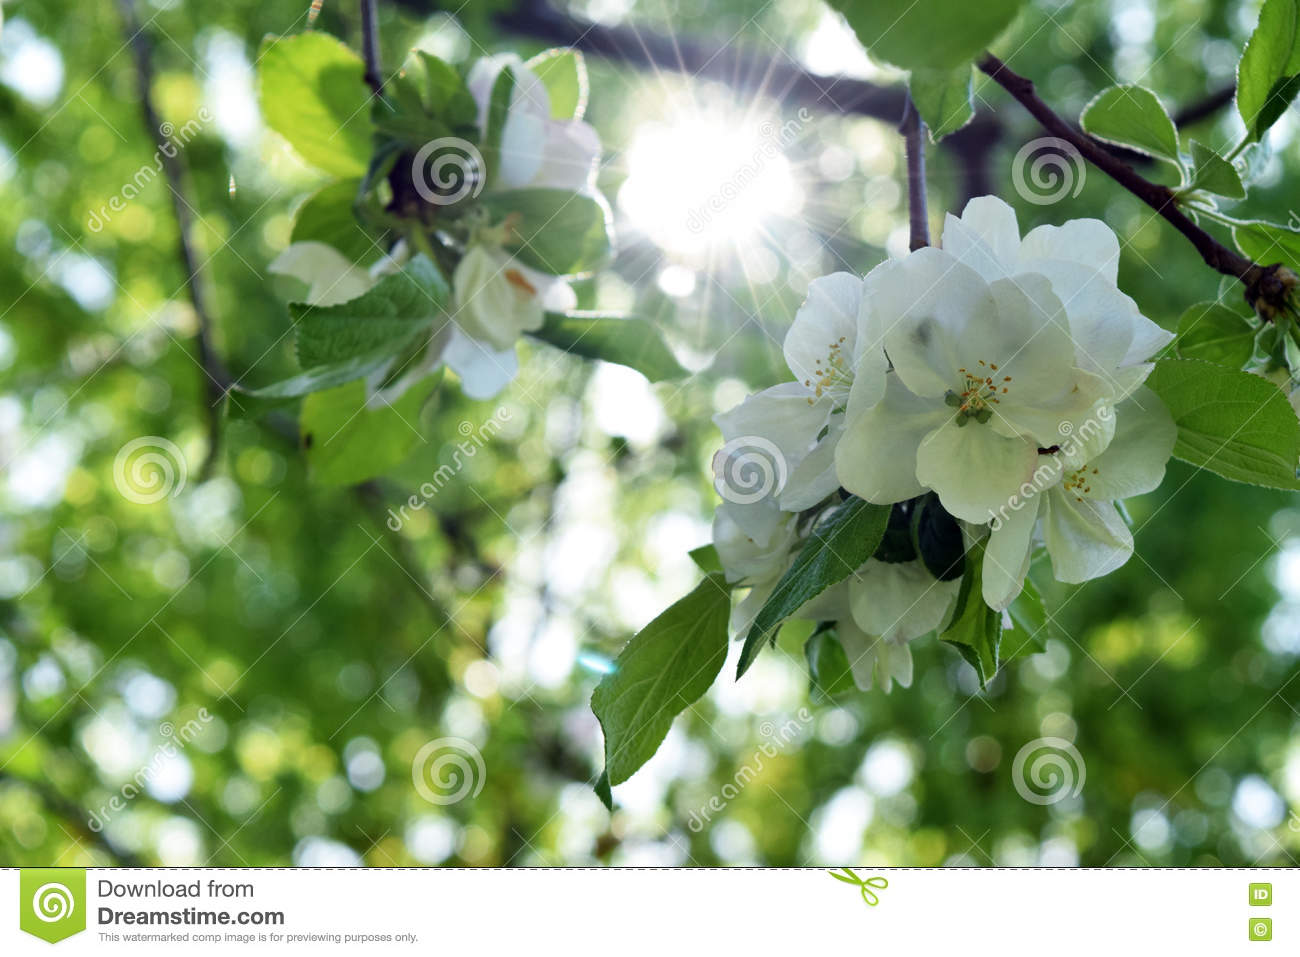 Crab apple tree blooming sunny stock image image of leaves branch download crab apple tree blooming sunny stock image image of leaves branch 70461075 mightylinksfo